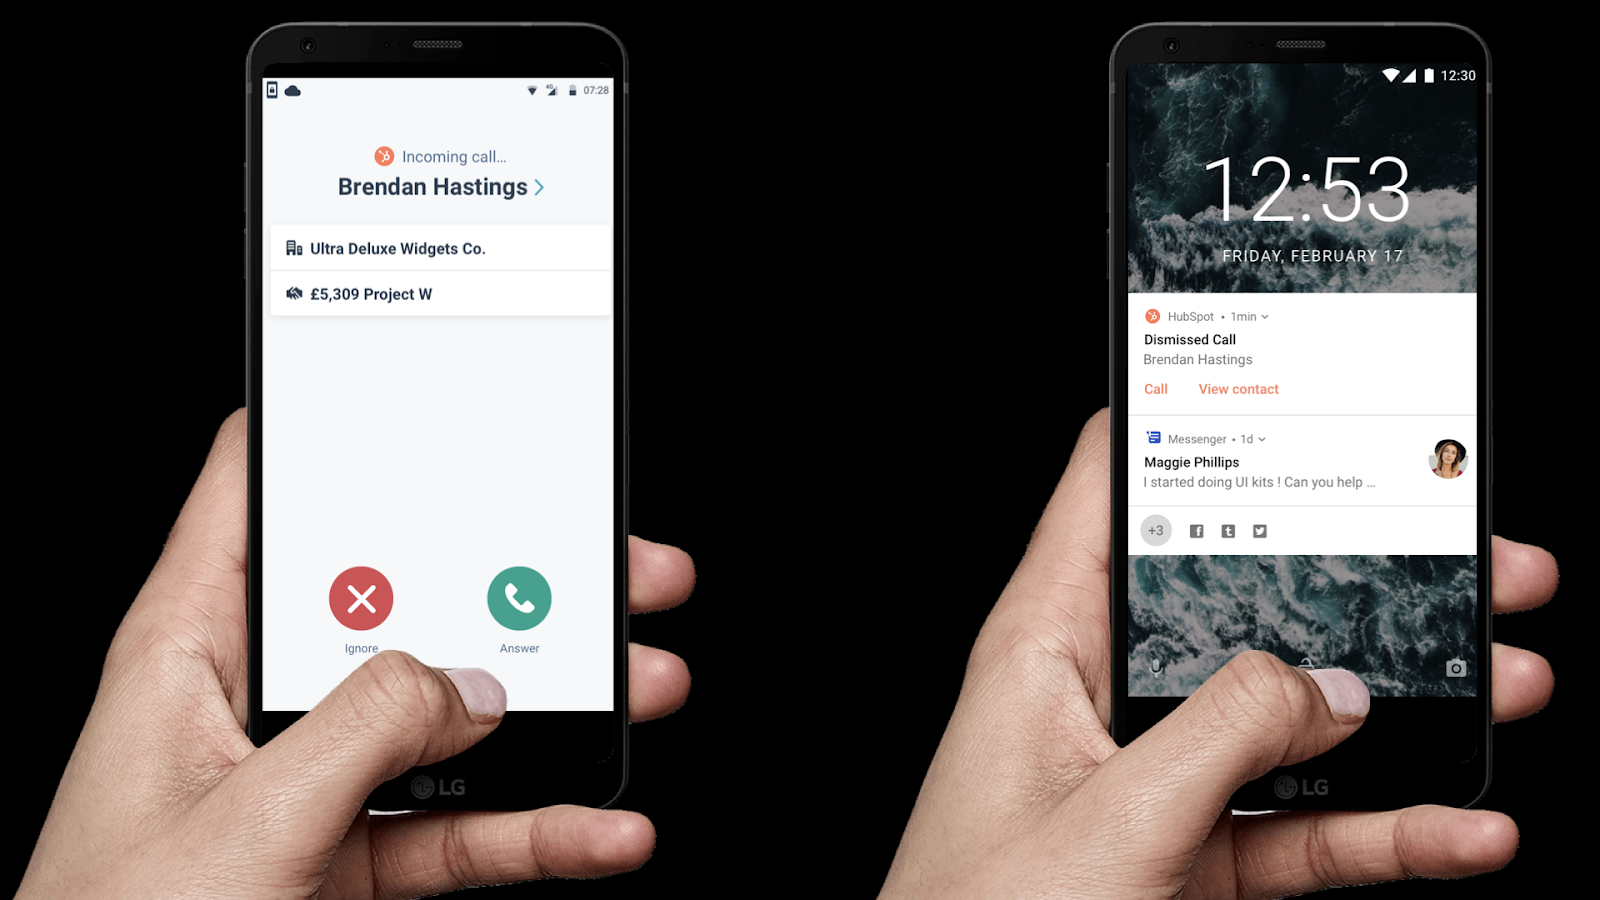 When a customer's using HubSpot CallerID and a contact calls them, a preview screen with the contact's name, company, and associated details appears on their phone screen as a preview